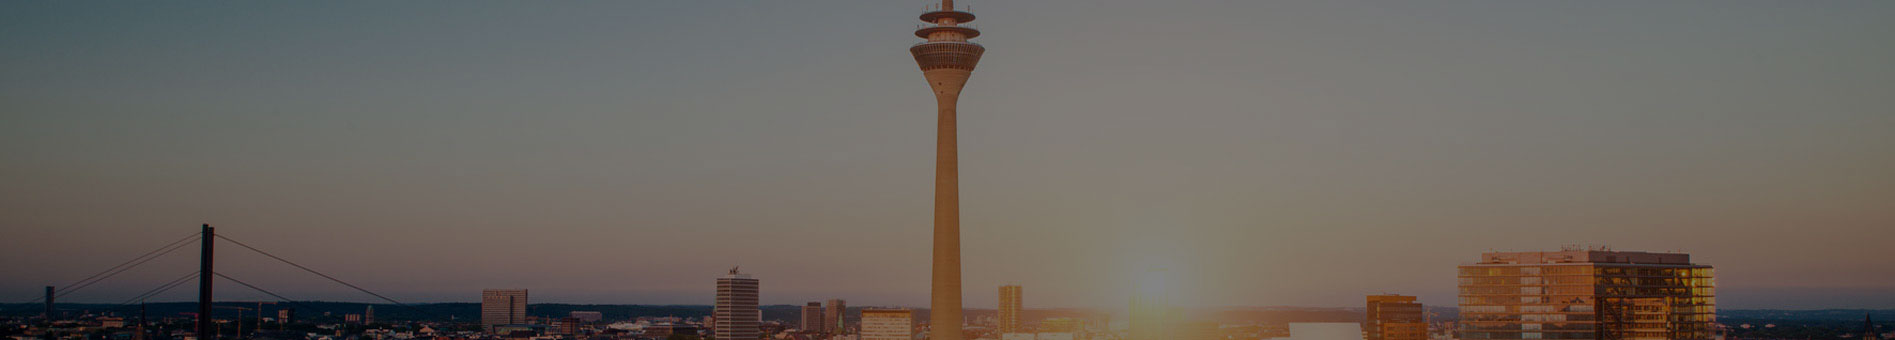 TOP INDUSTRY EVENTS IN DUSSELDORF FOR FLEDGING BUSINESSES